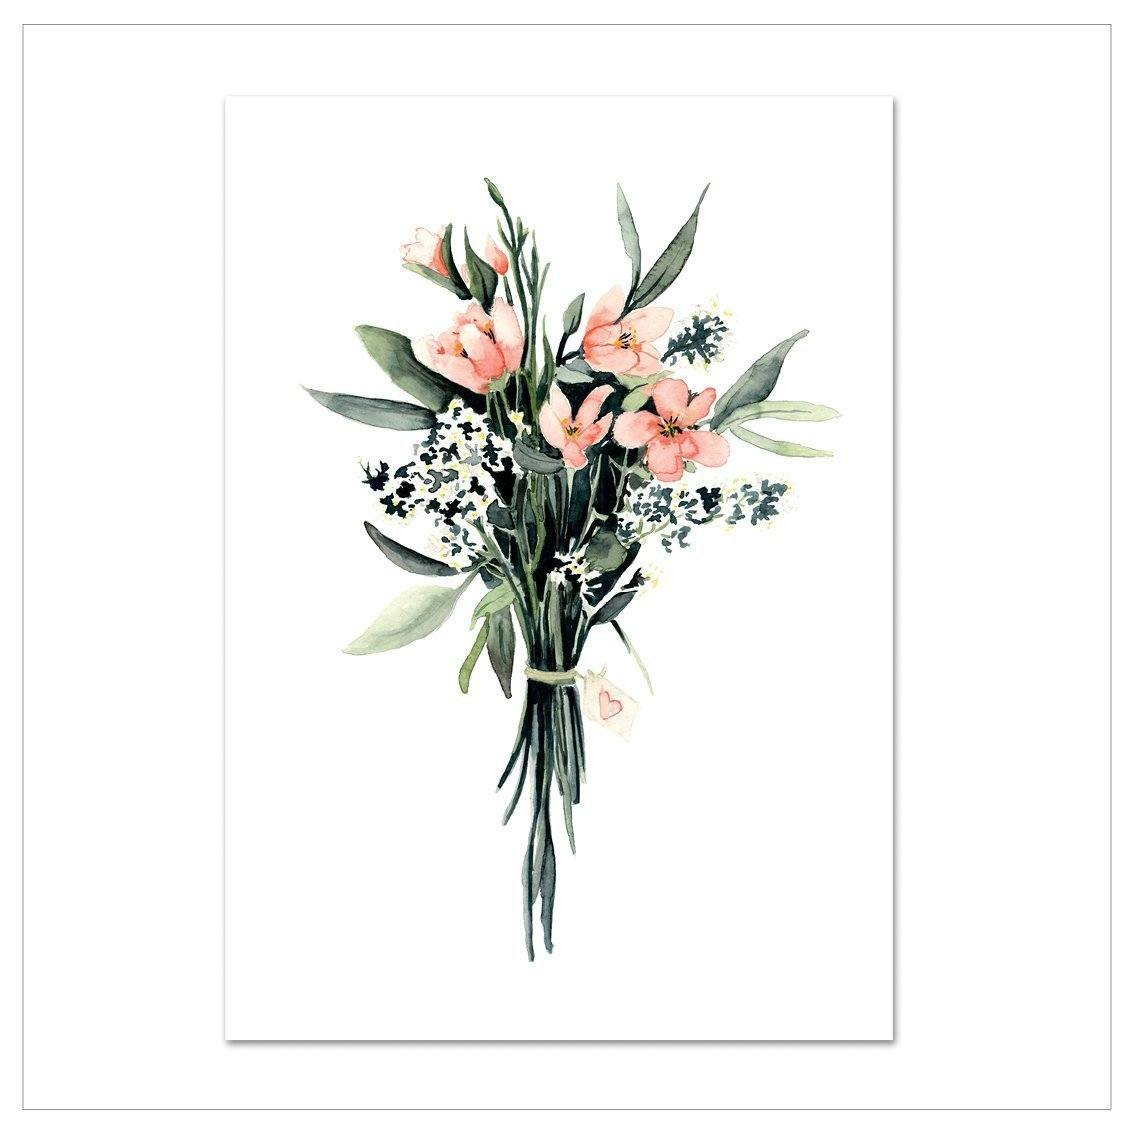 Kunstdruck - FLOWER BOUQUET Kunstdruck Leo la Douce